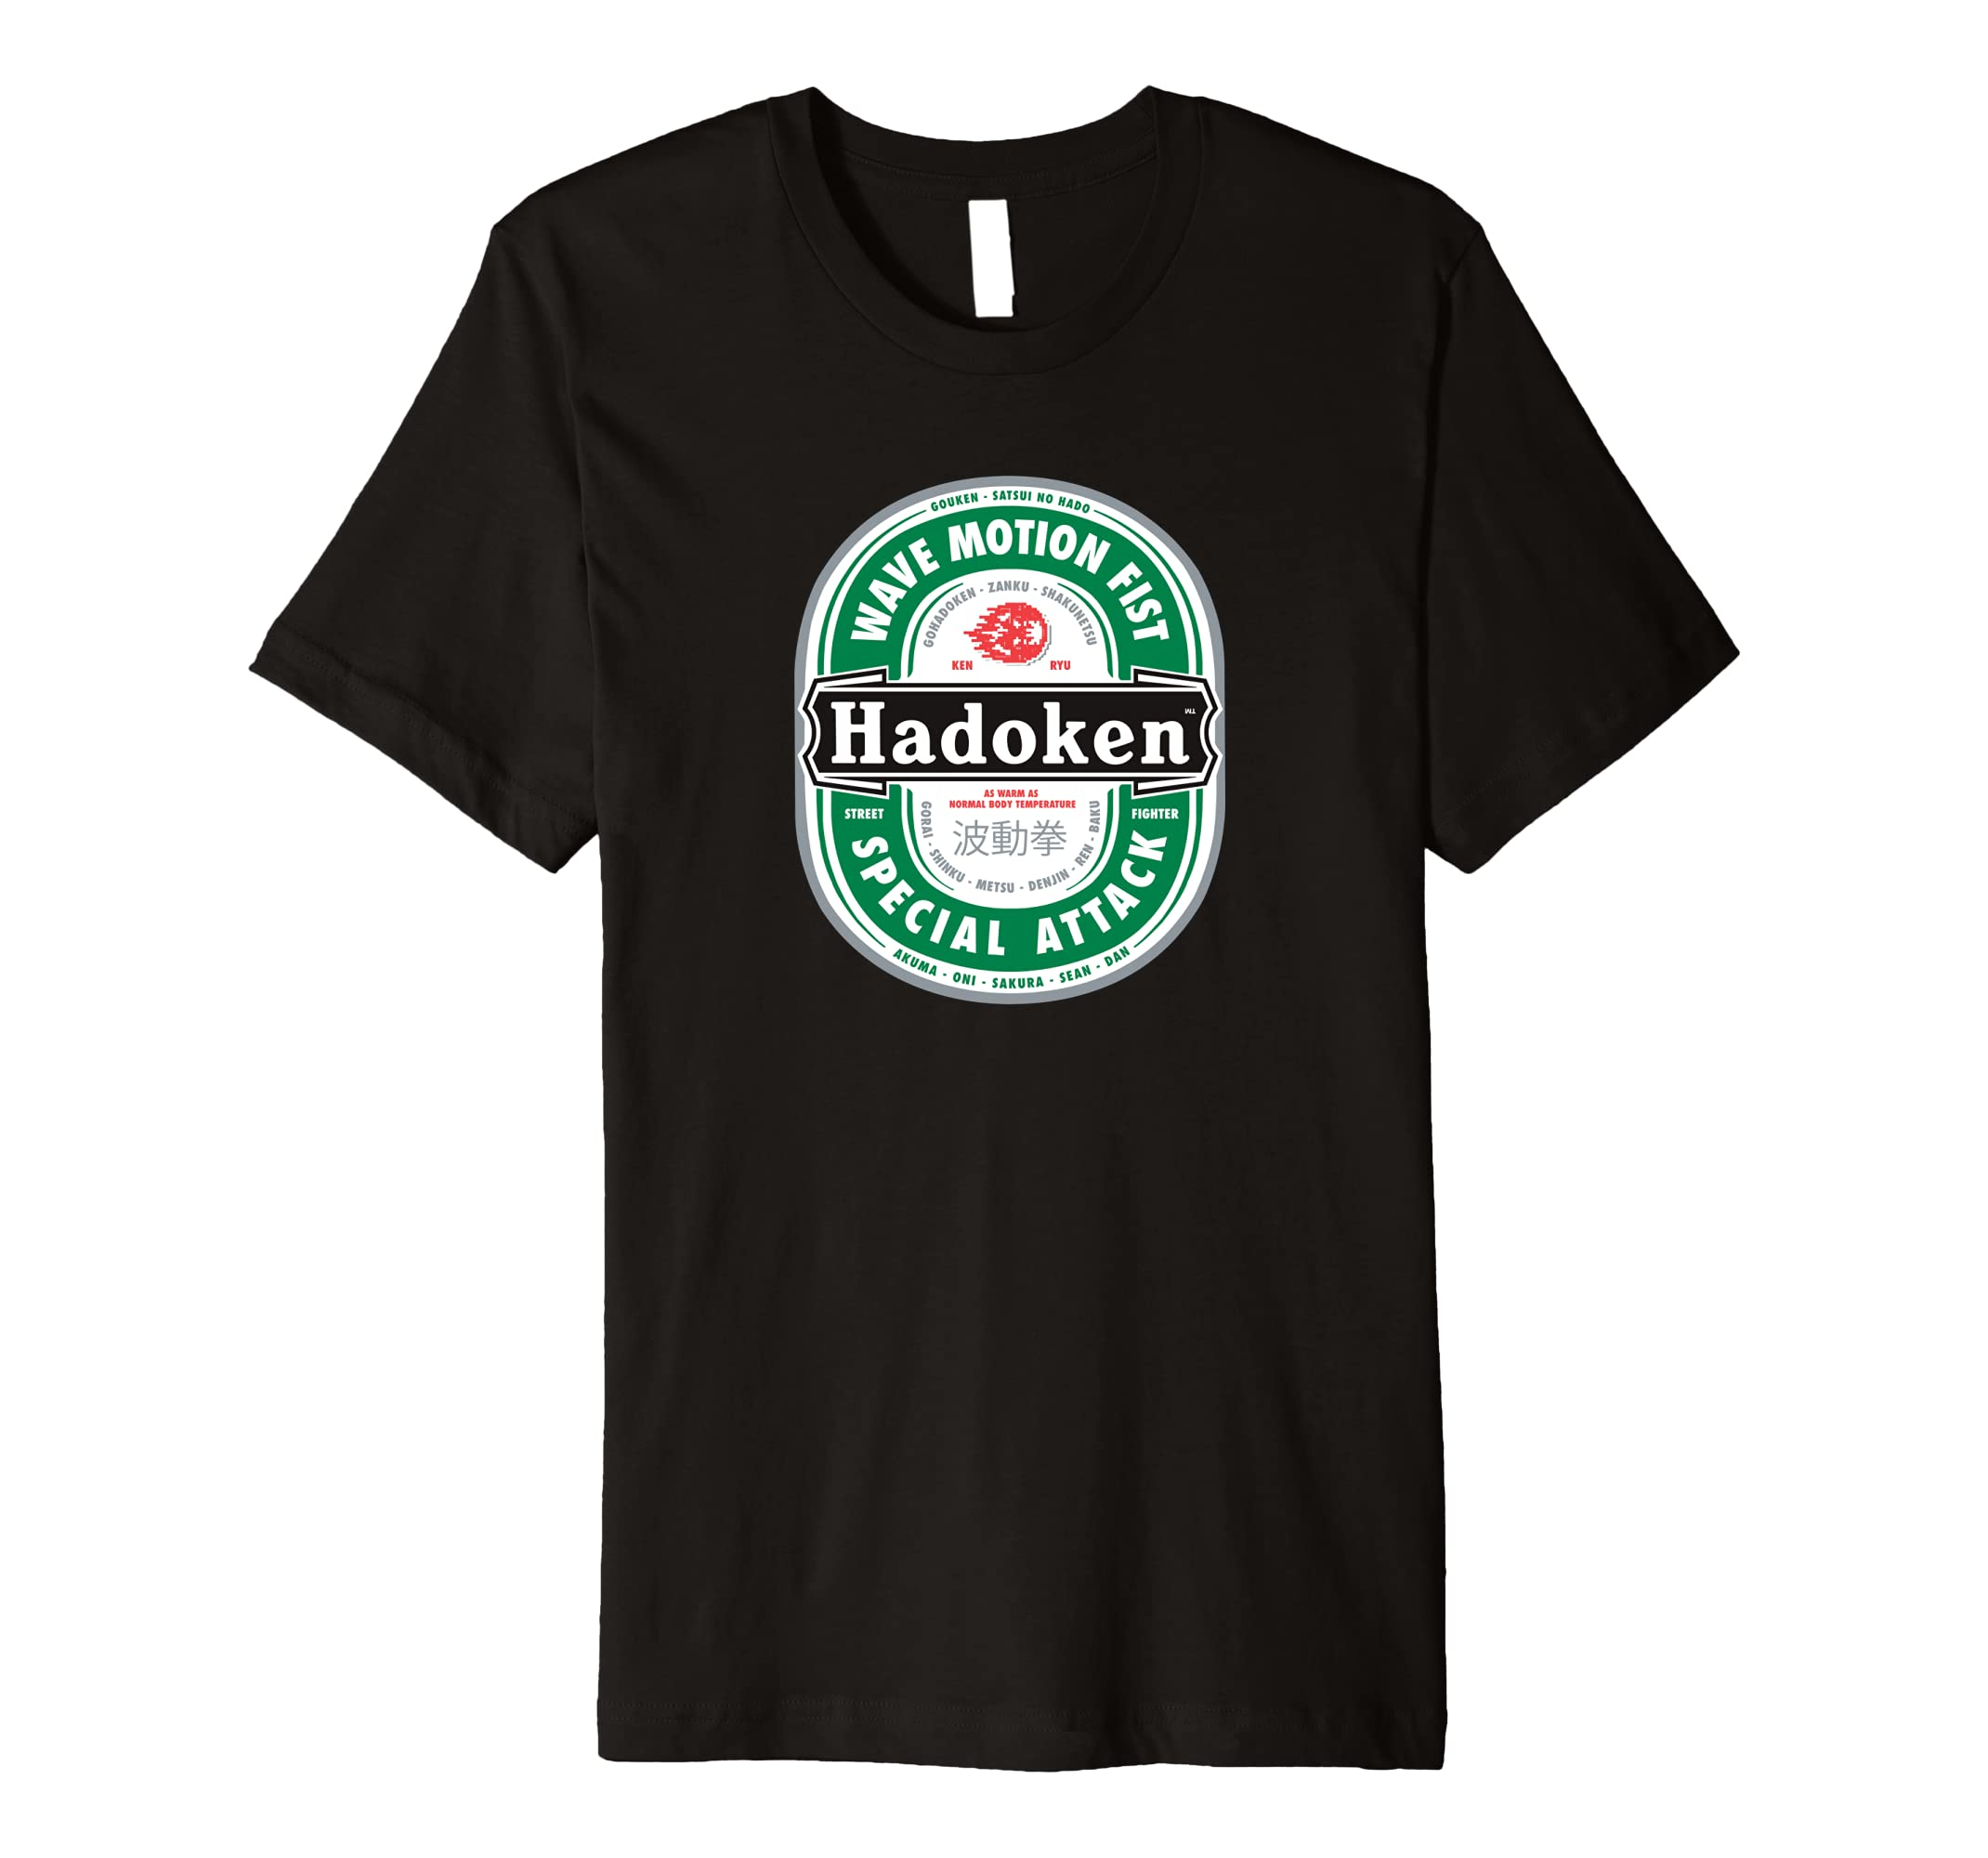 Amazon com: Hadoken Shirt for Hadouken Fighter from the